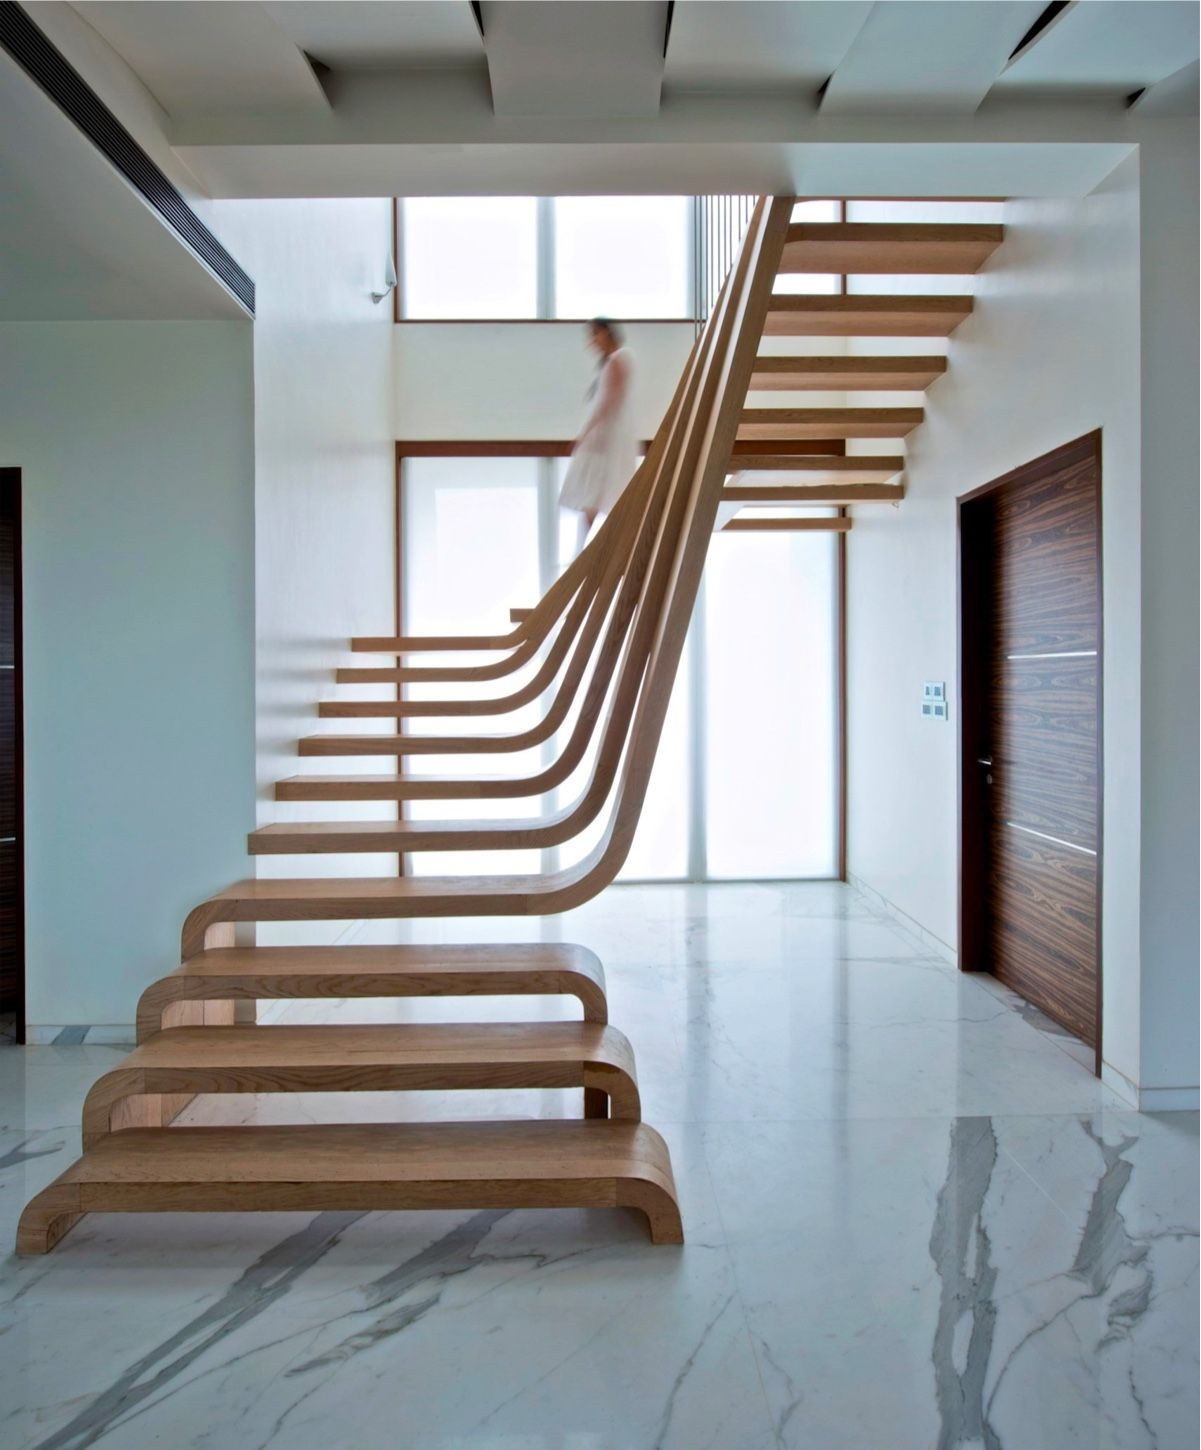 Staircases Design Homedesigning Via 25 Unique Staircase Designs To Take